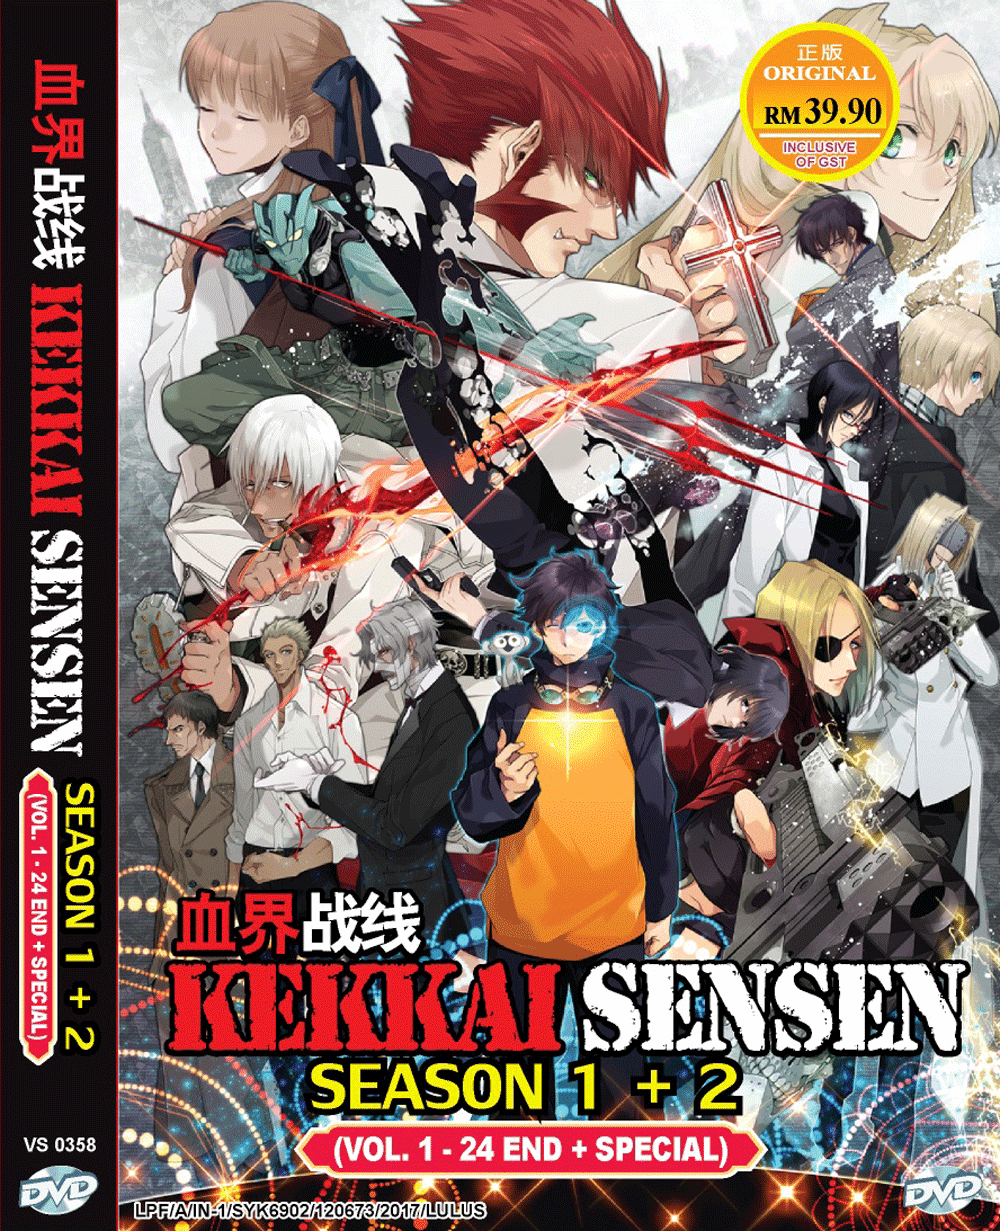 Kekkai Sensen Season 1+2 Vol.1-24 End+ Special  (English Dubbed)